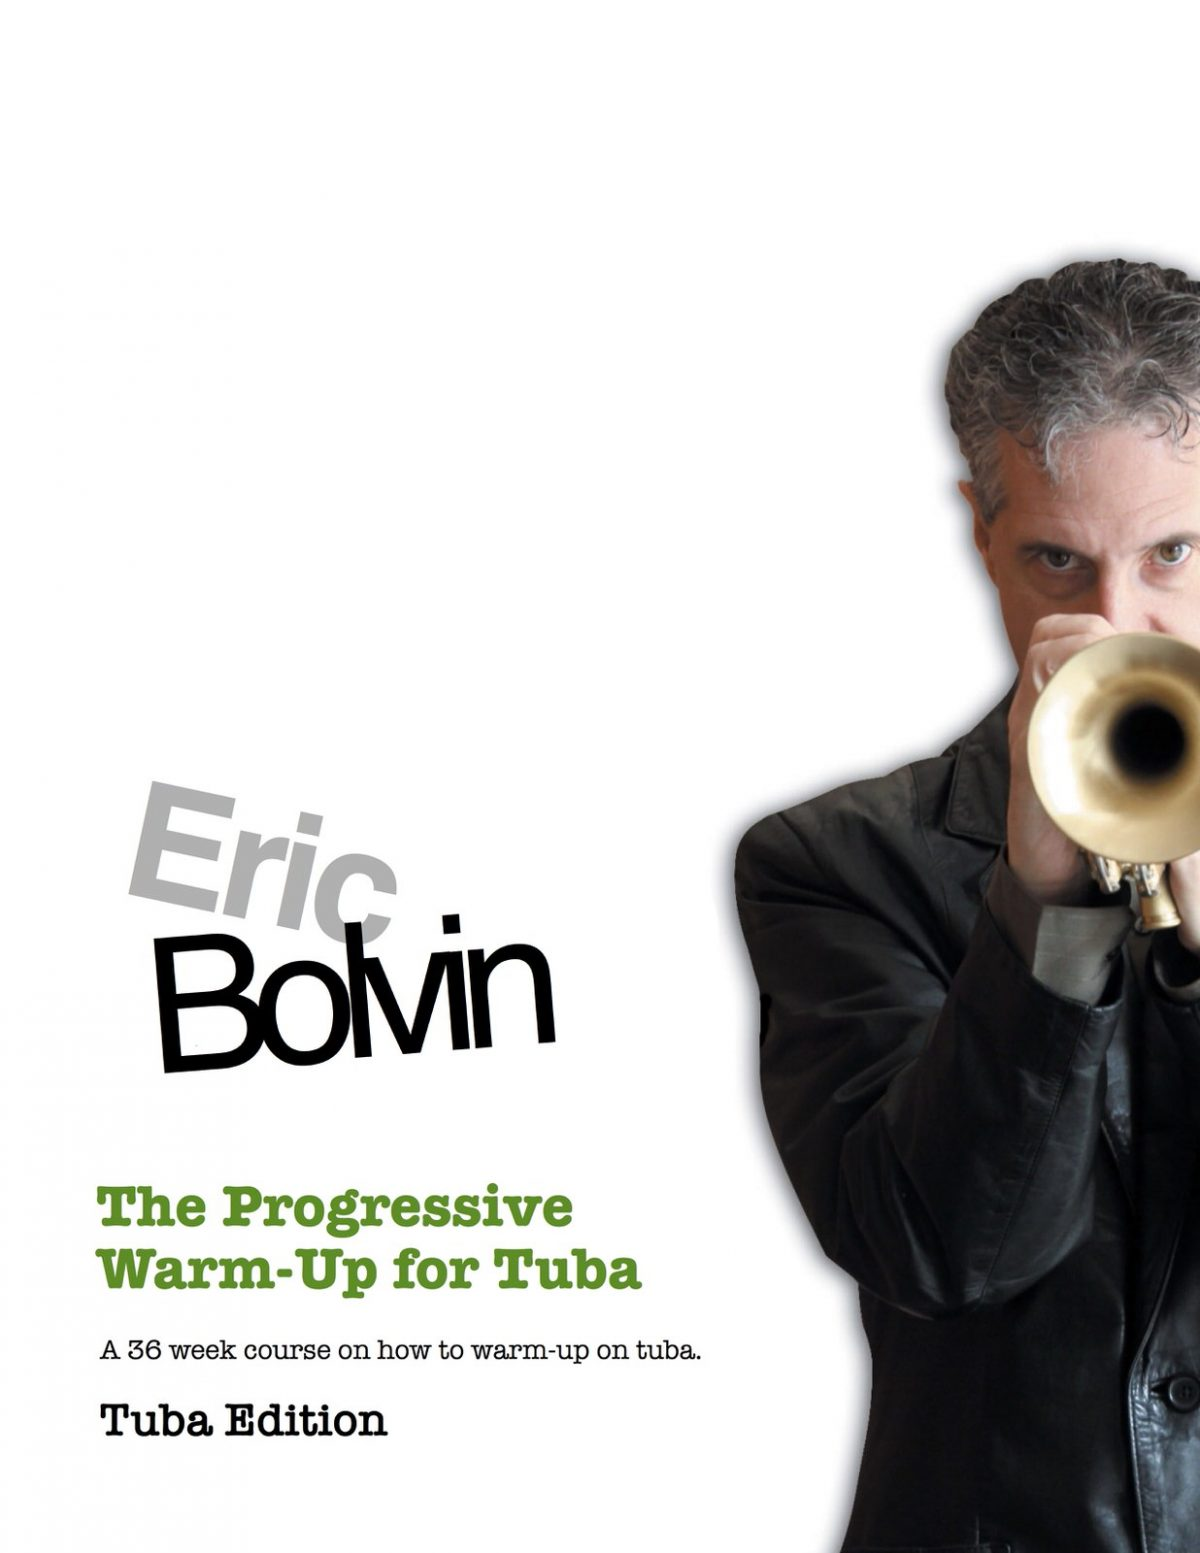 Bolvin, The Progresive Warm Up tuba-p01